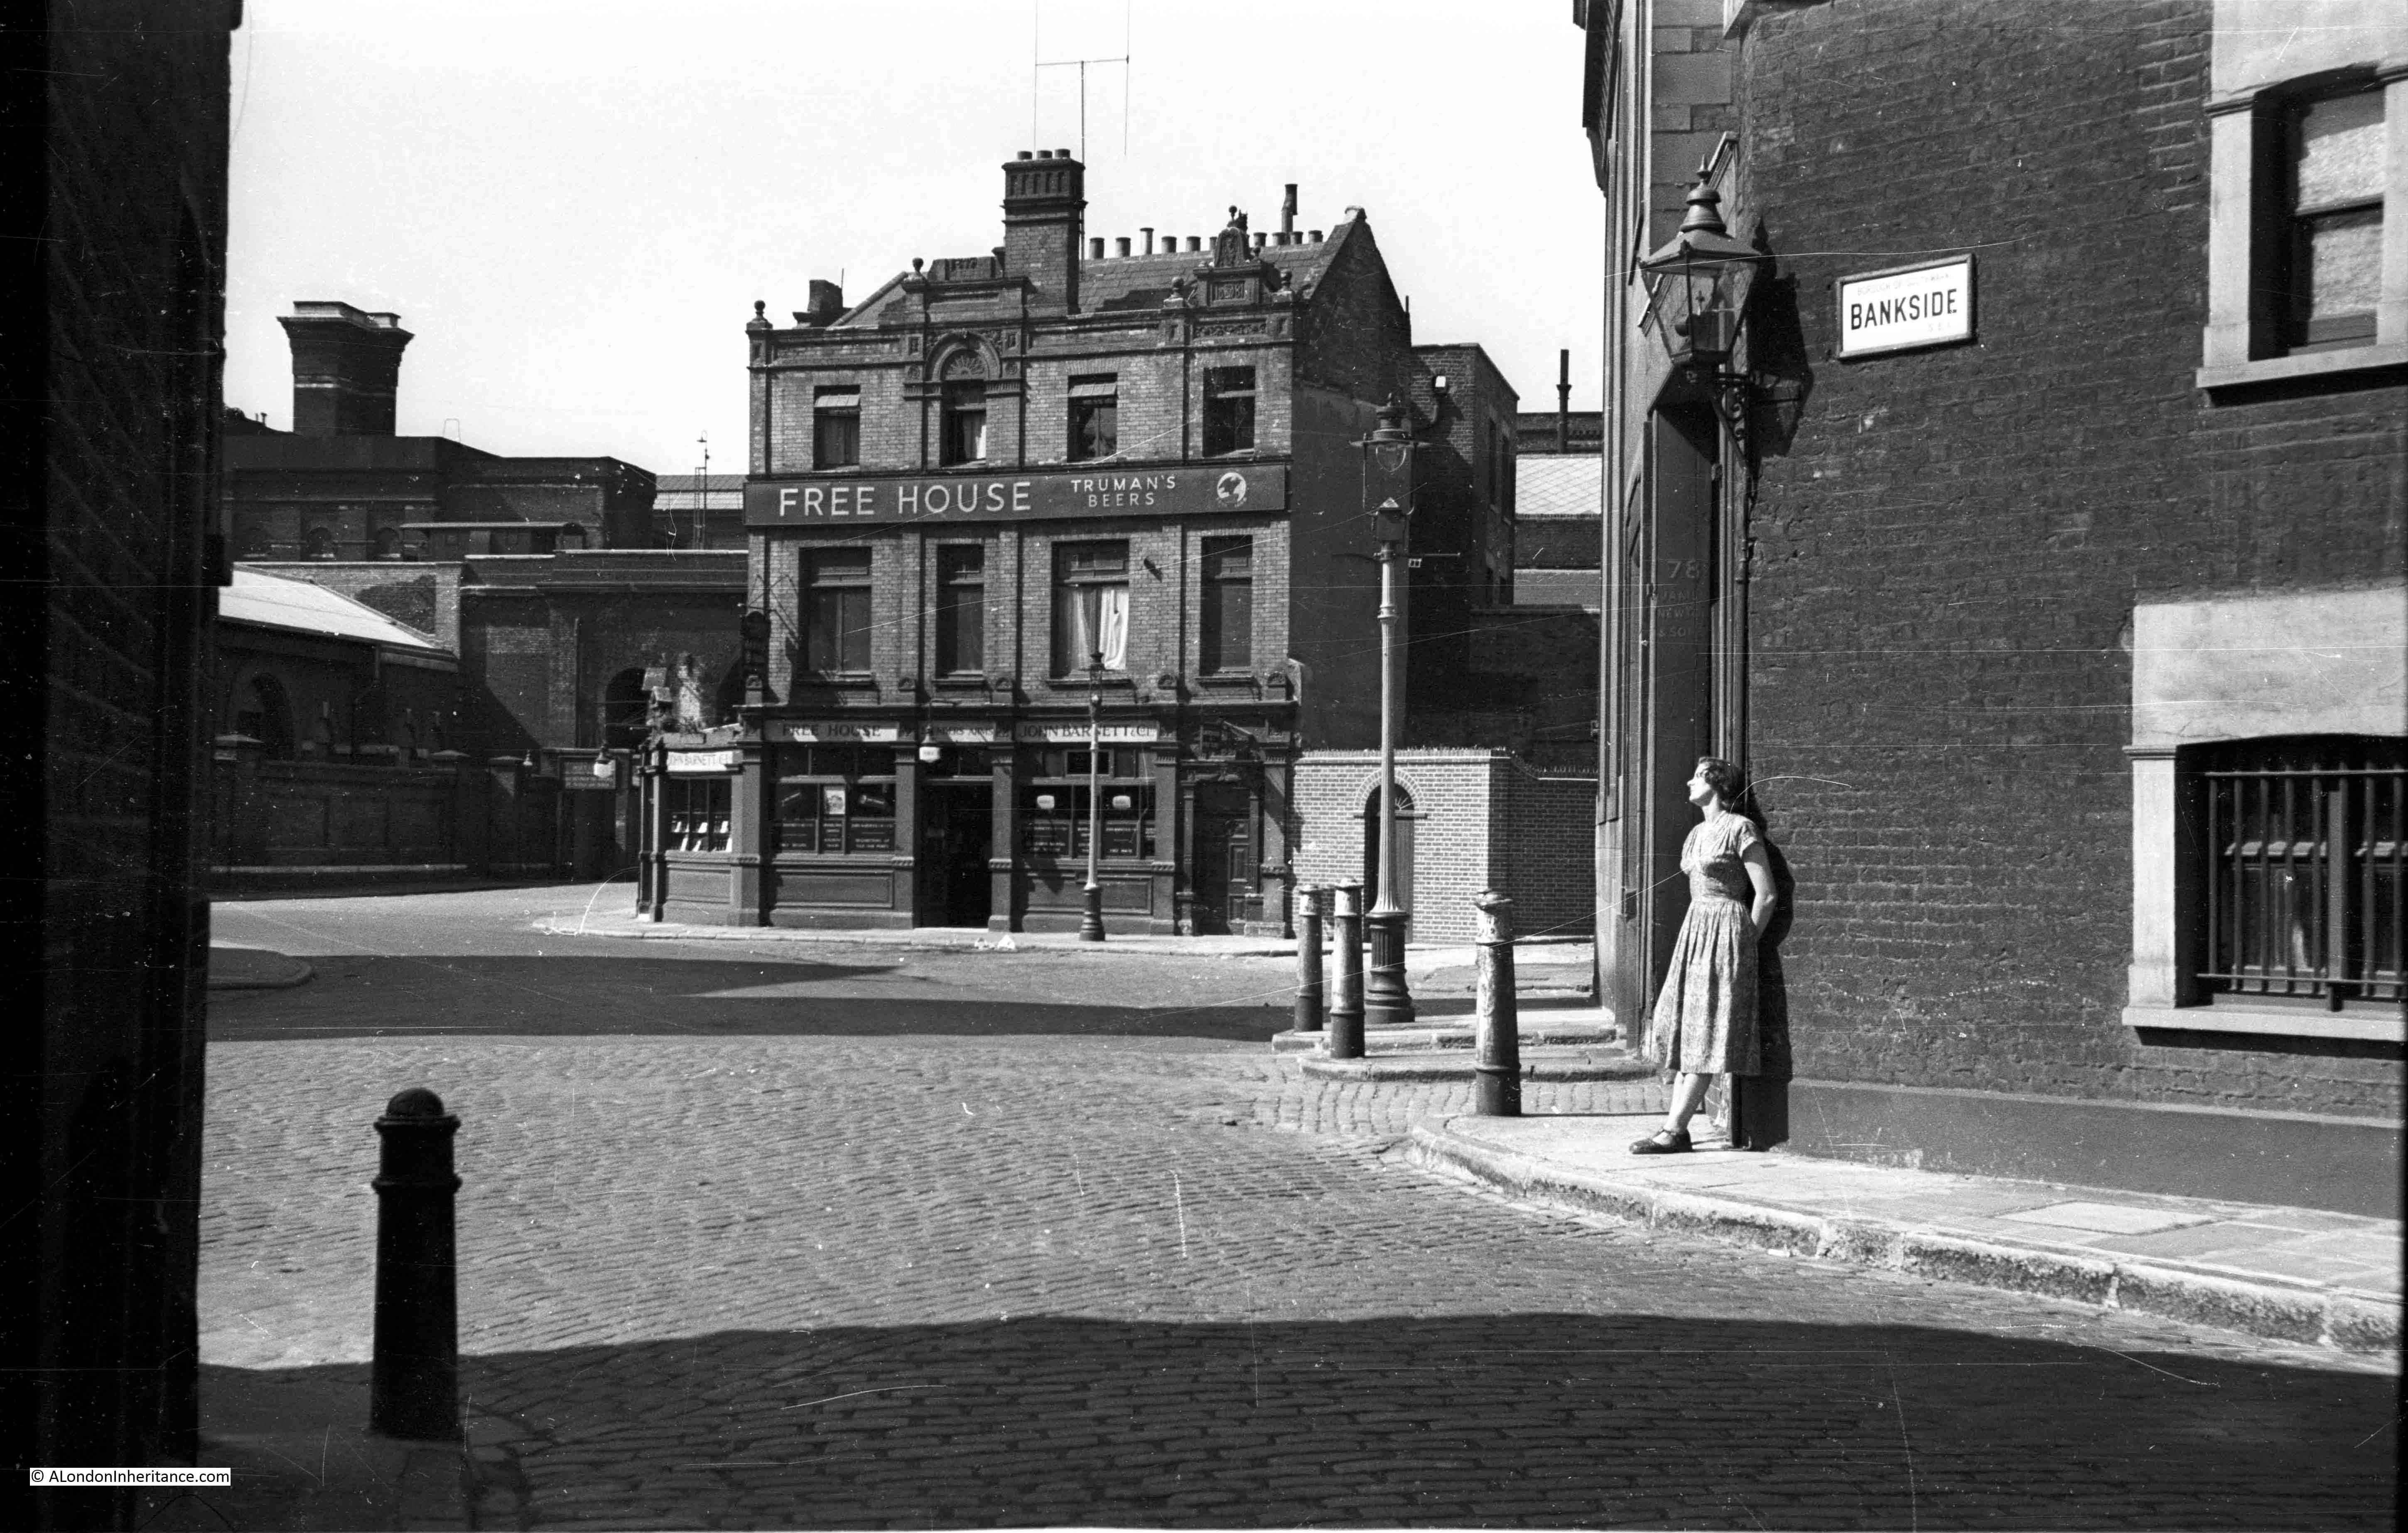 The founder 39 s arms falcon stairs a brothel and confused for Classic house green street